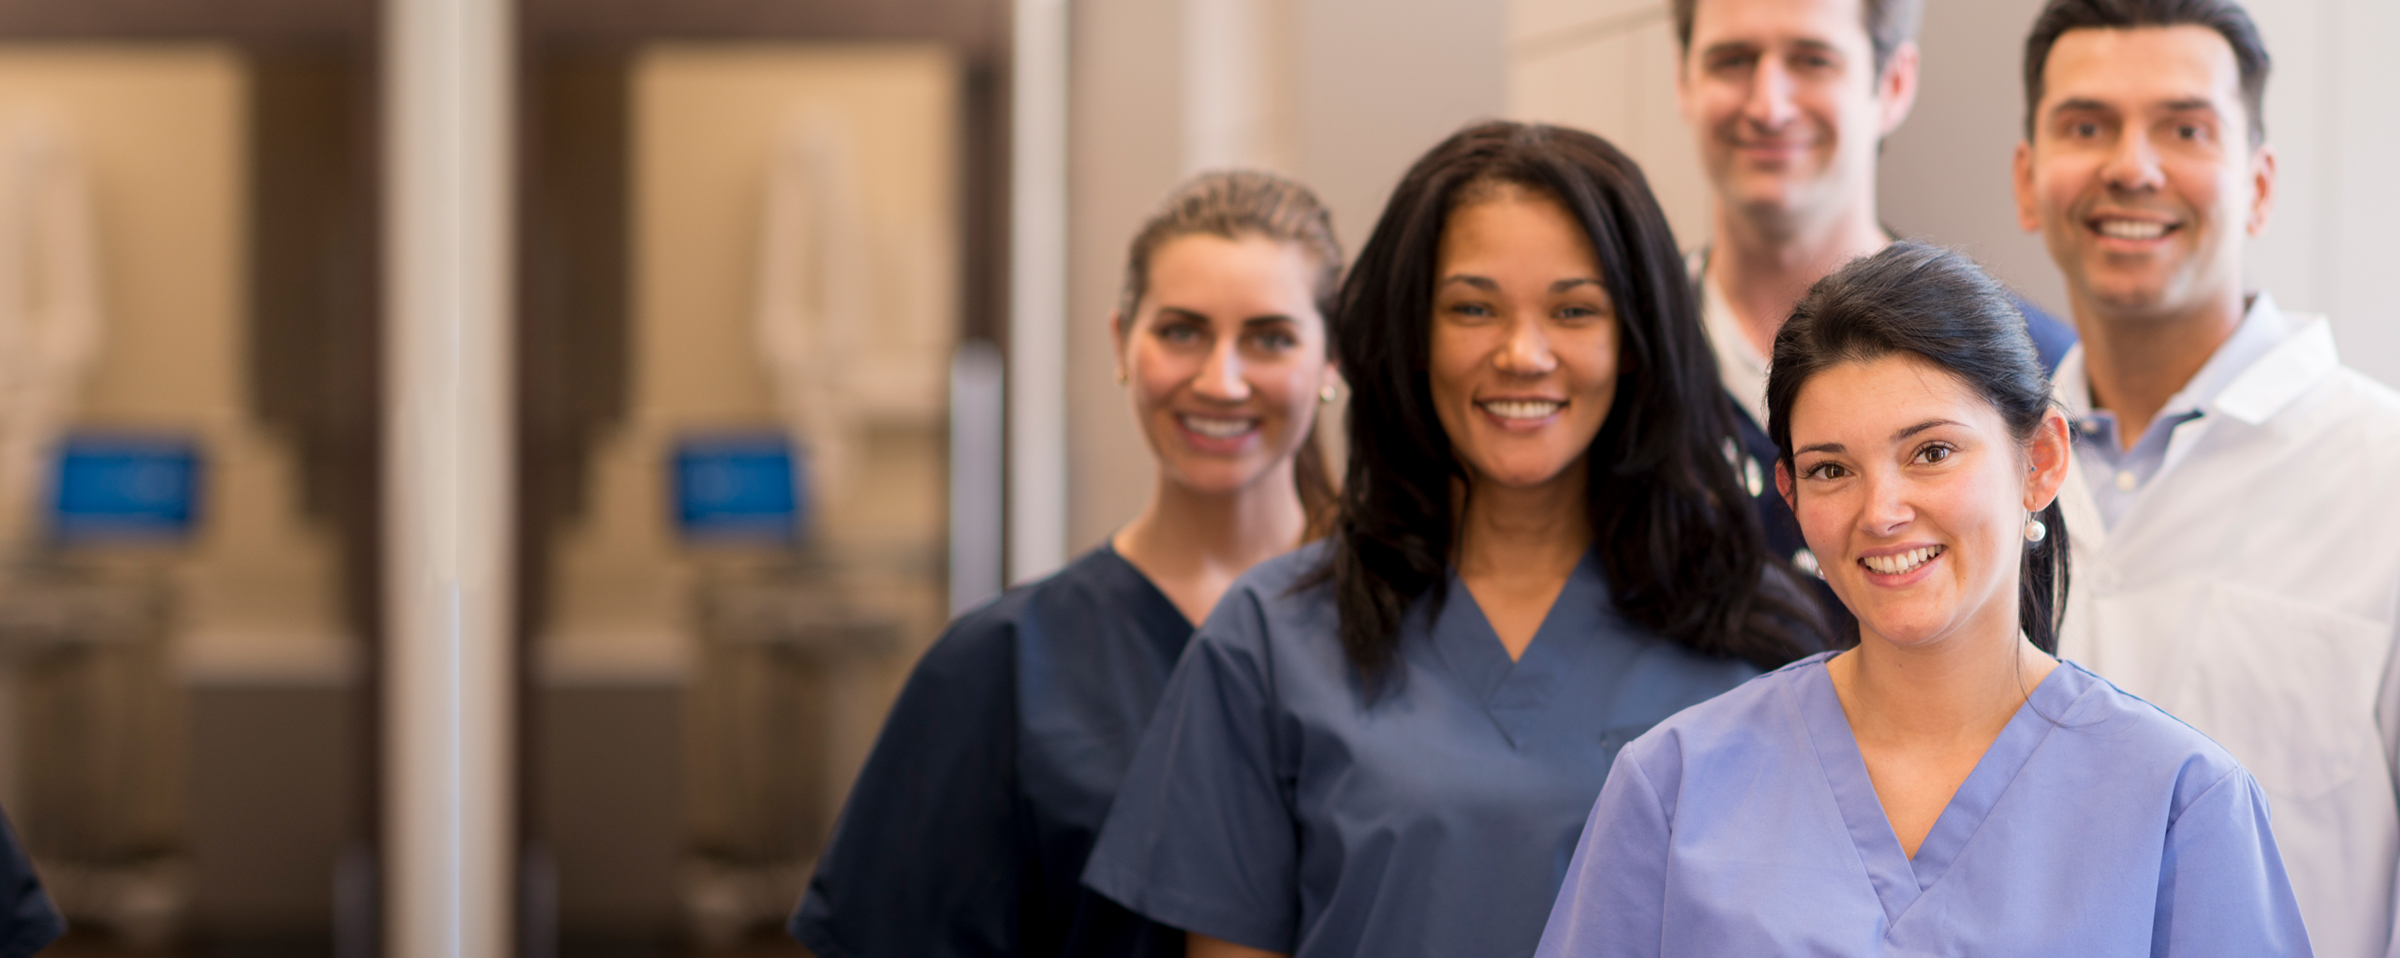 RosmanSearch for Nurse Practitioners and Physician Assistants